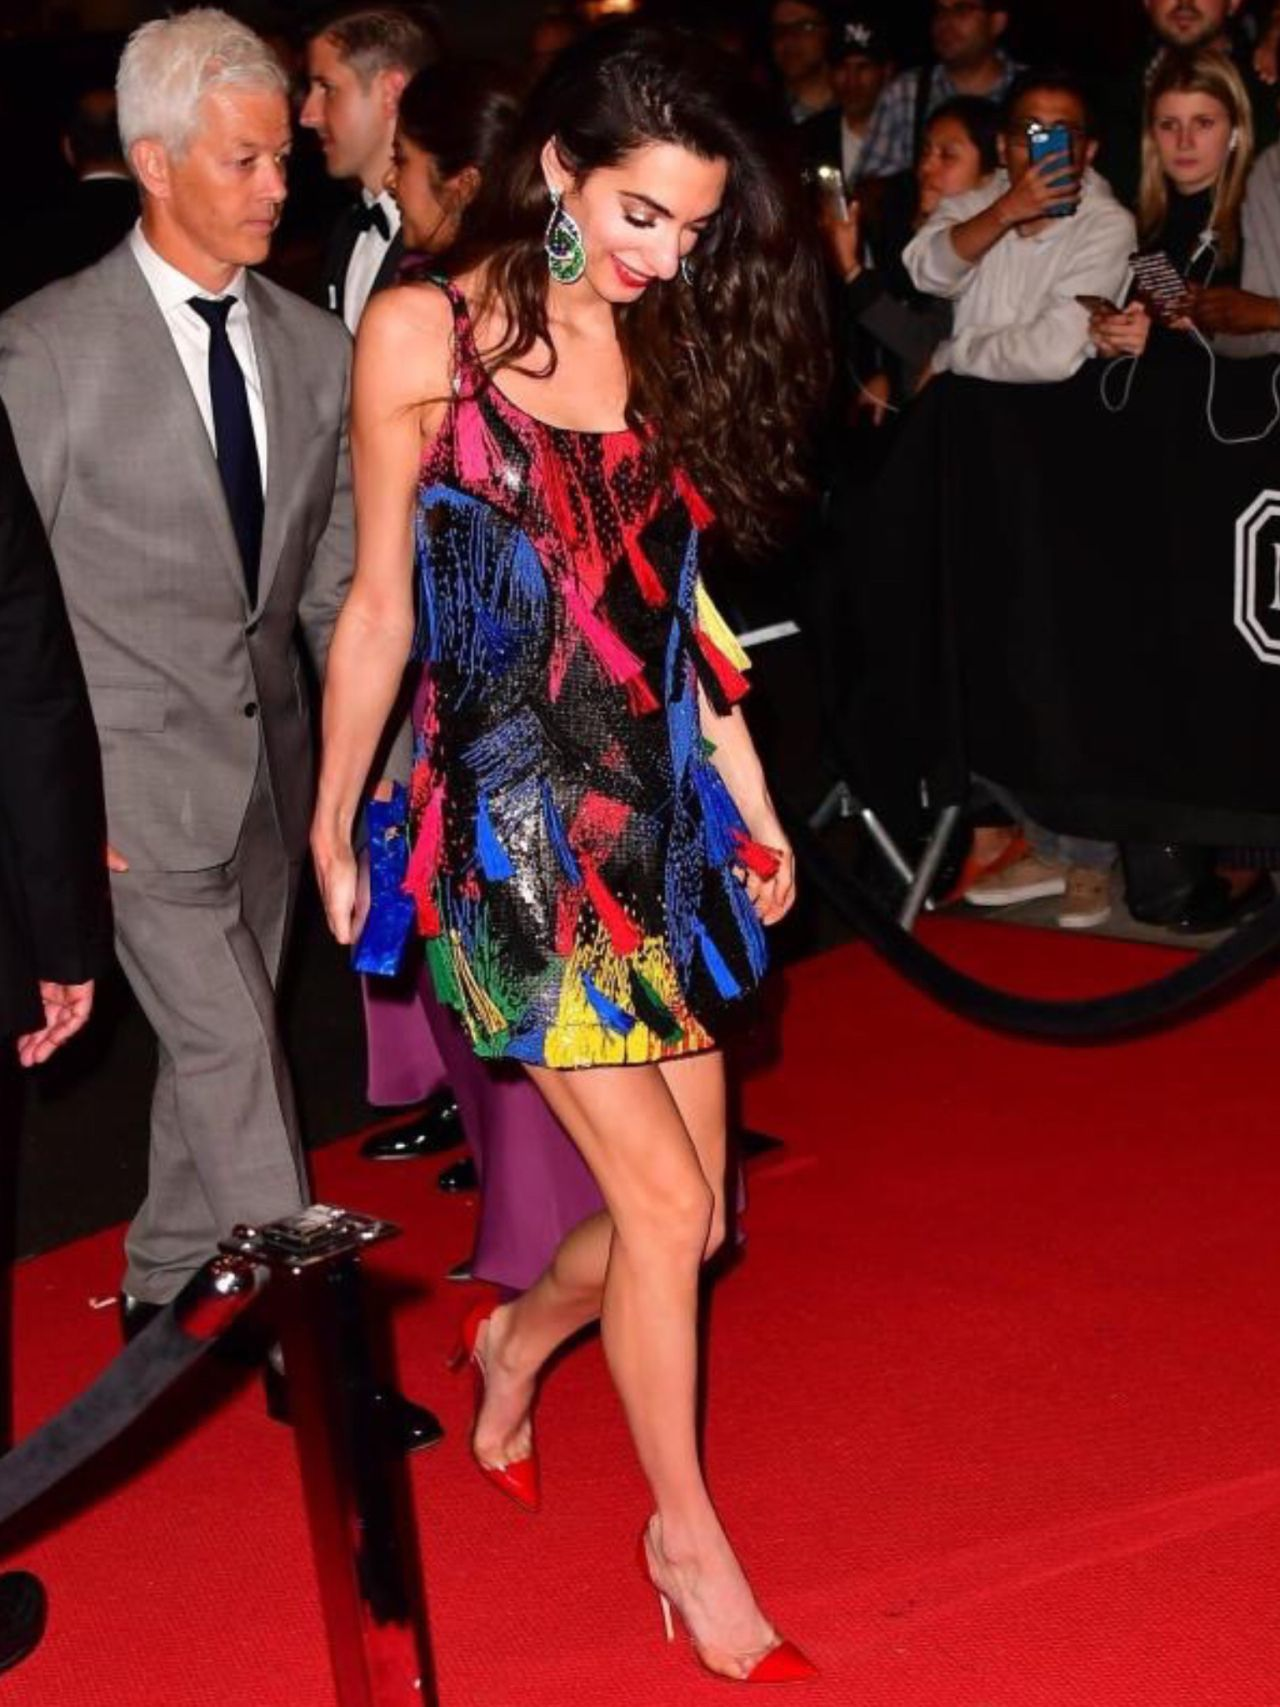 Amal Clooney arriving at Rihanna afterparty MET Gala 07 05